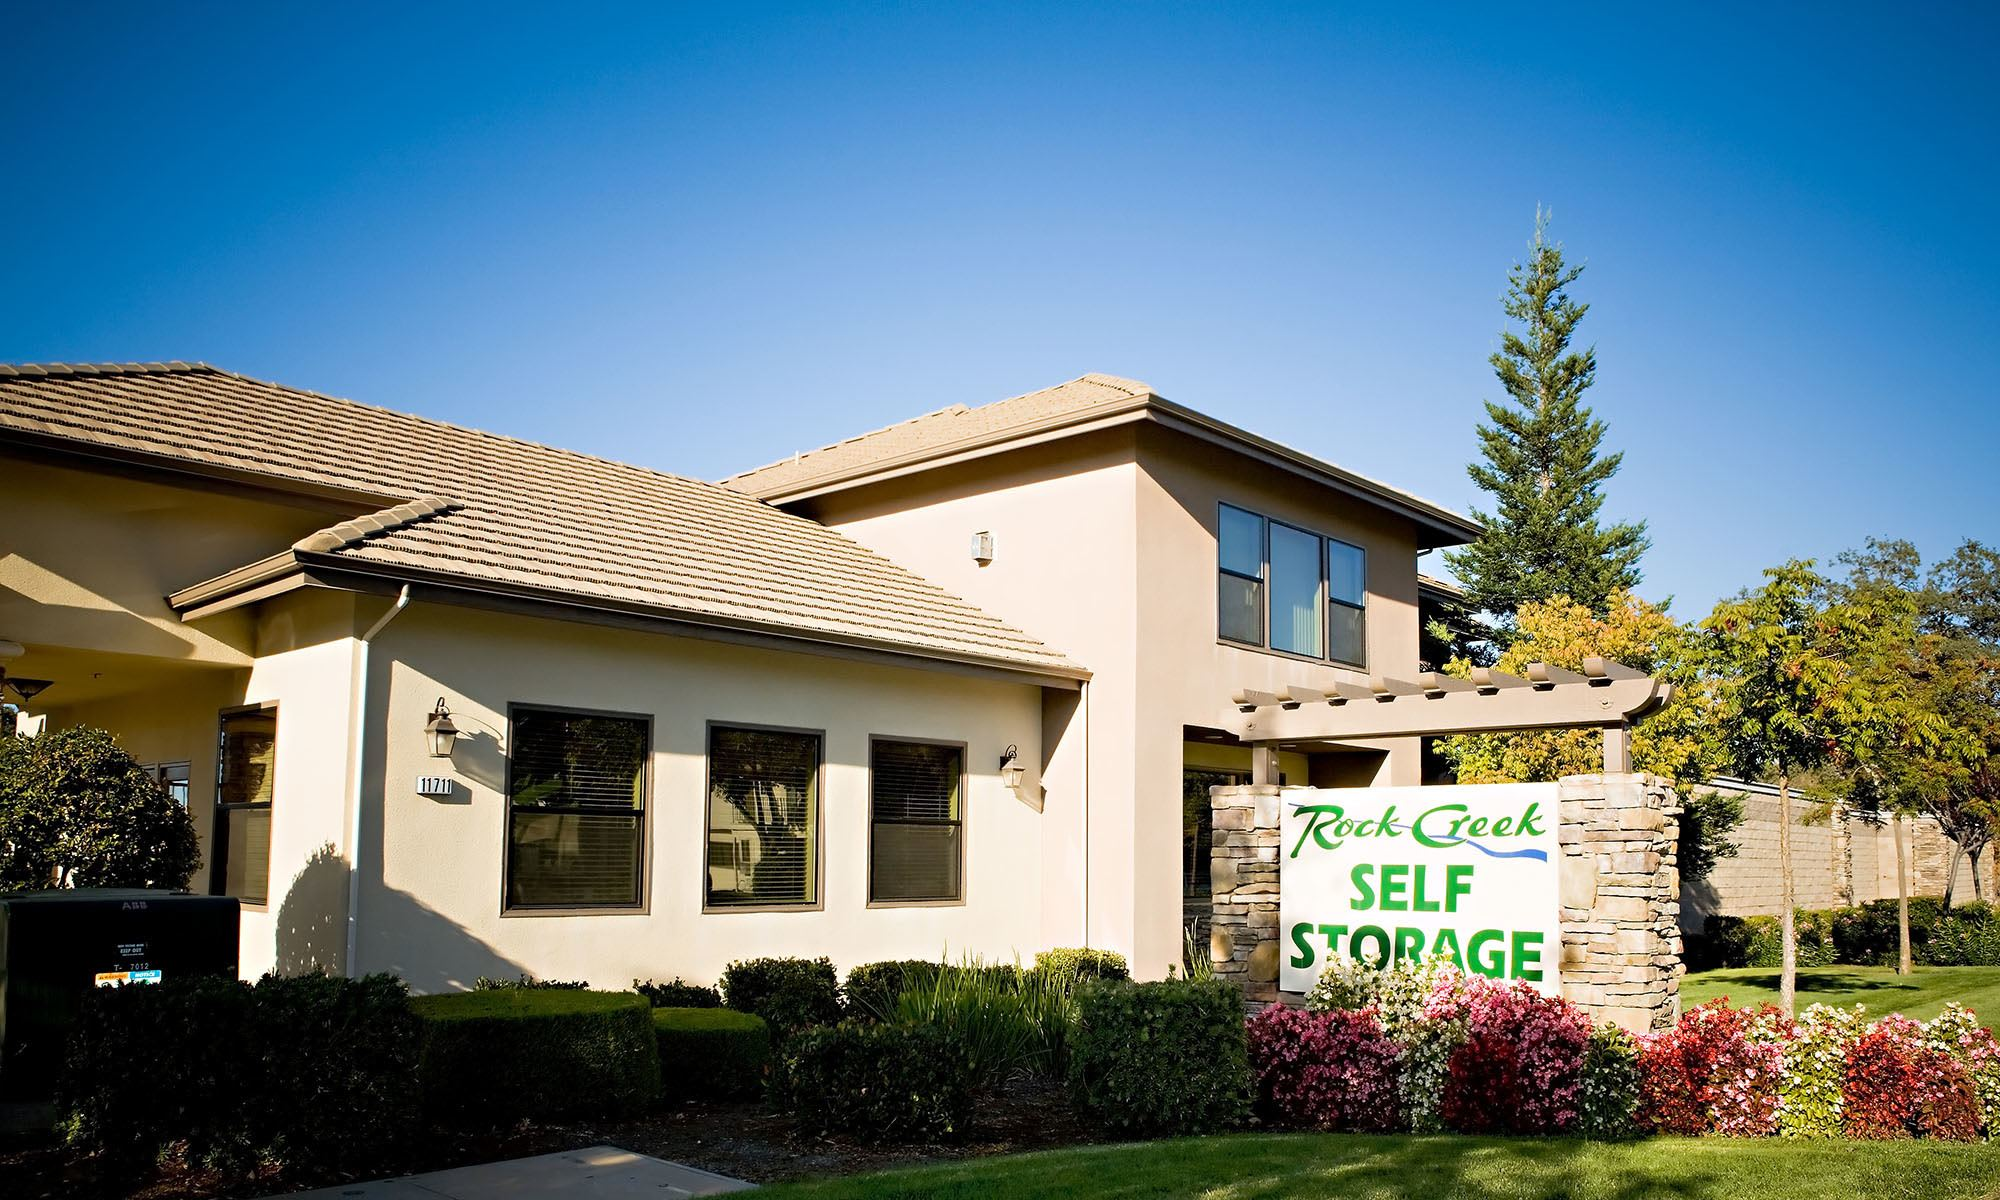 Self storage in Auburn CA